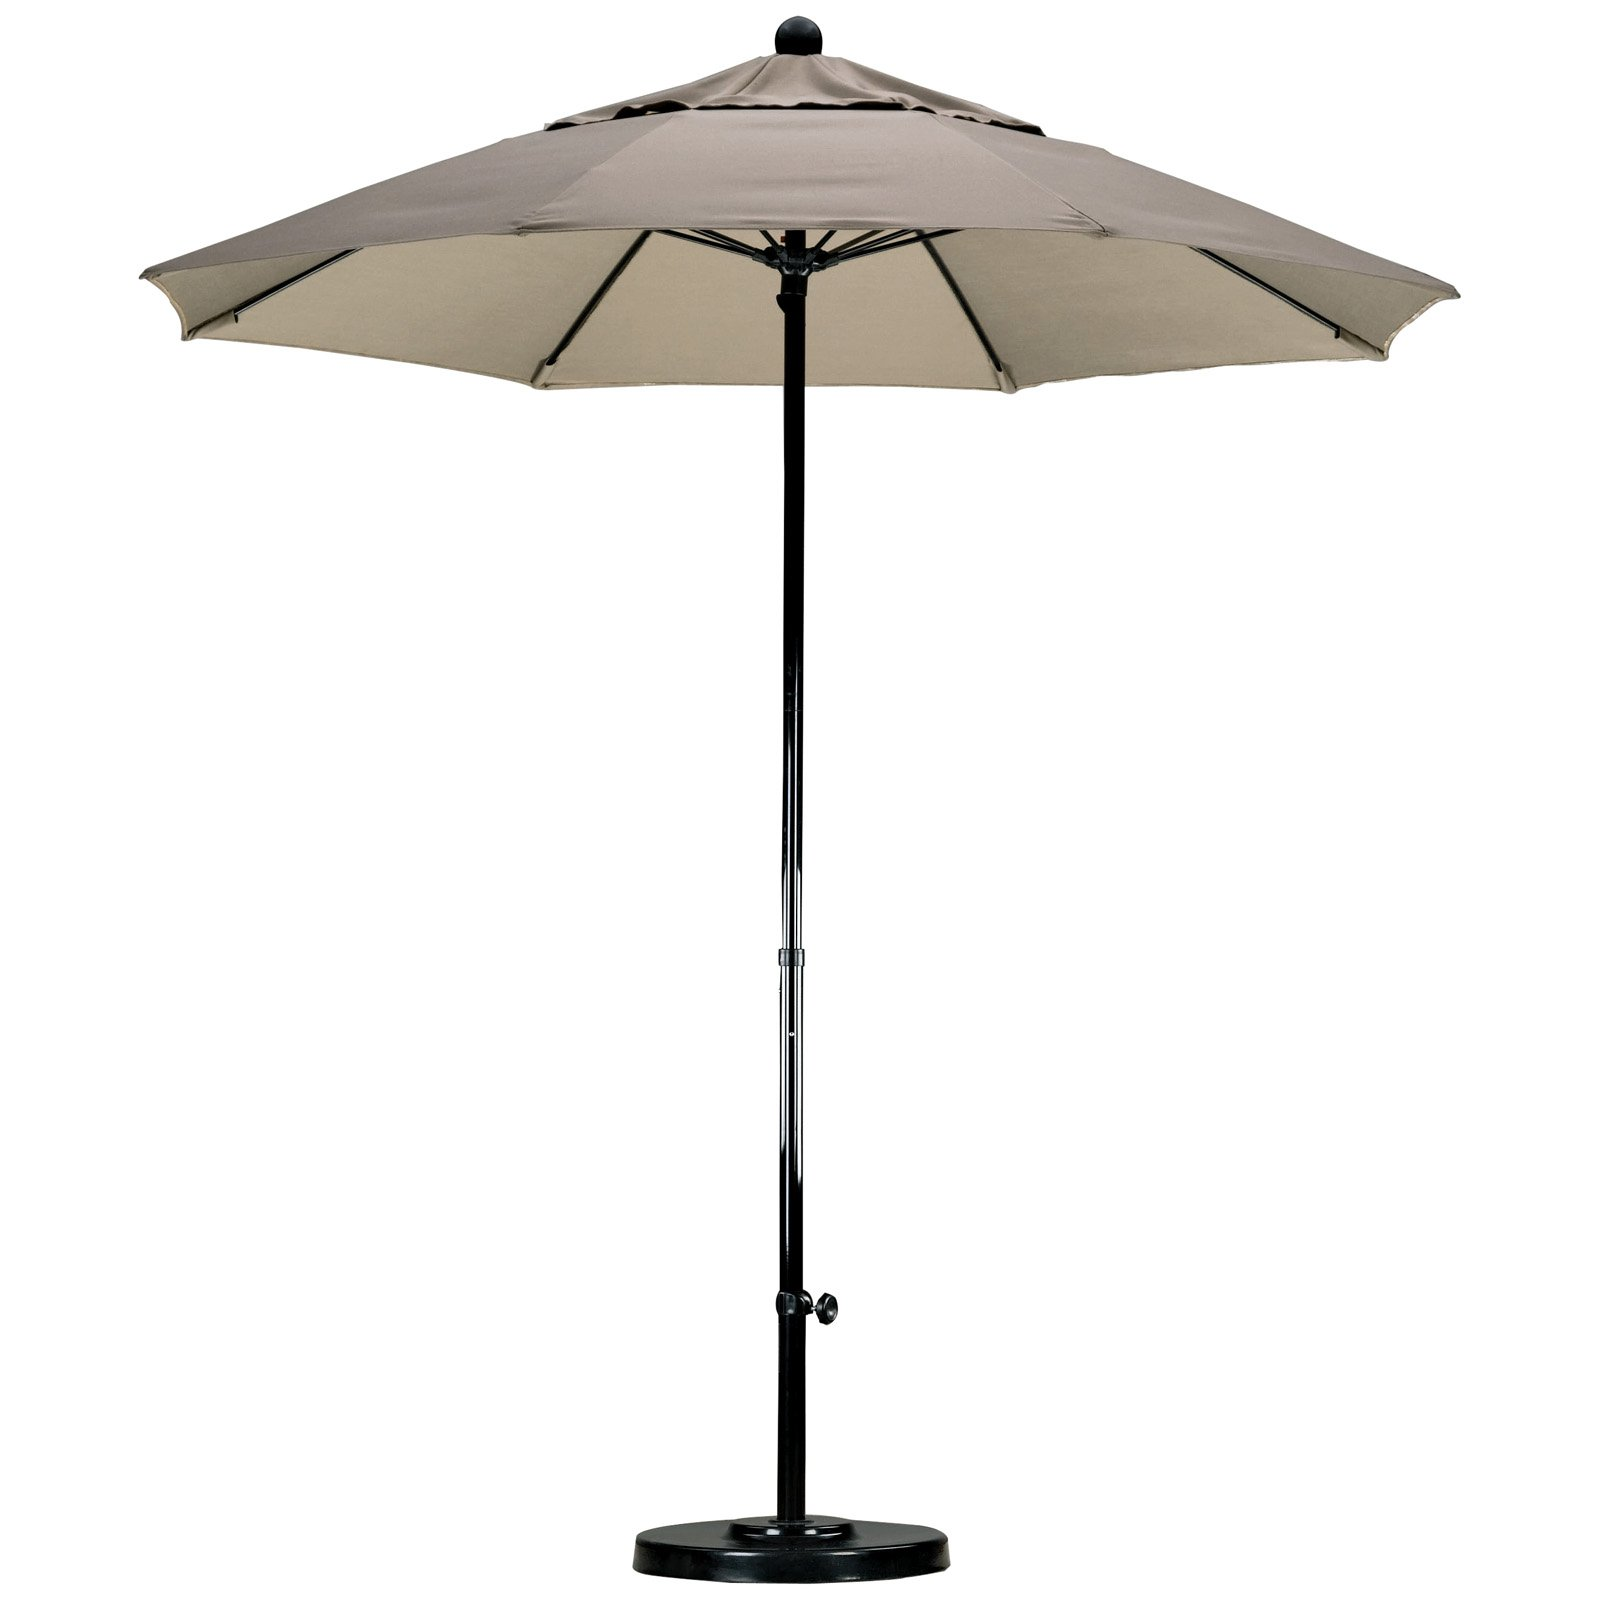 California Umbrella 7.5 ft. Complete Fiberglass Pacifica Patio Umbrella